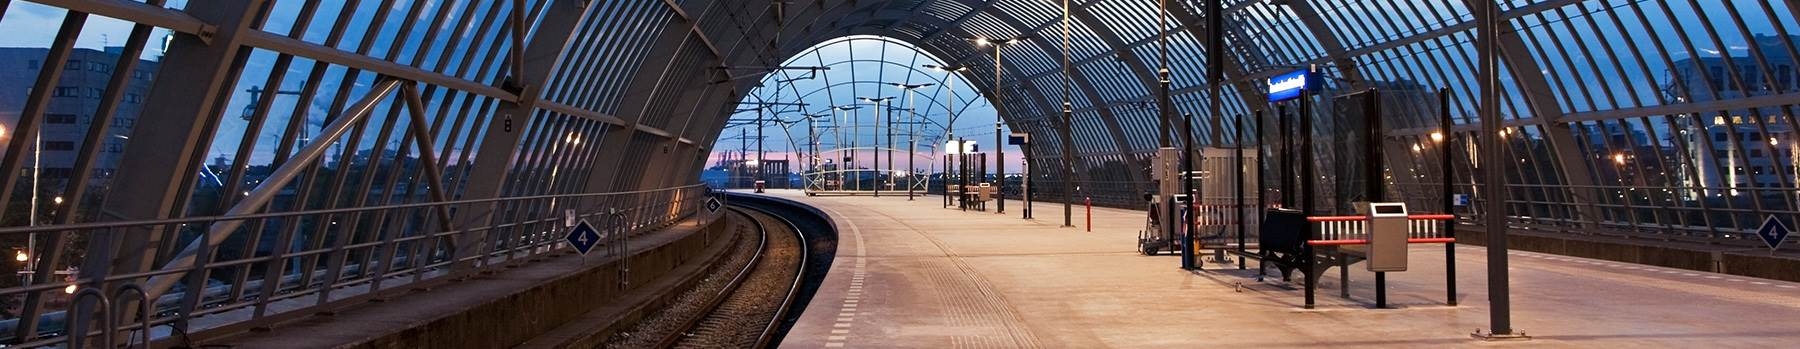 hero_Station-Platform-Design_iSt_9367220_L_railroad-station